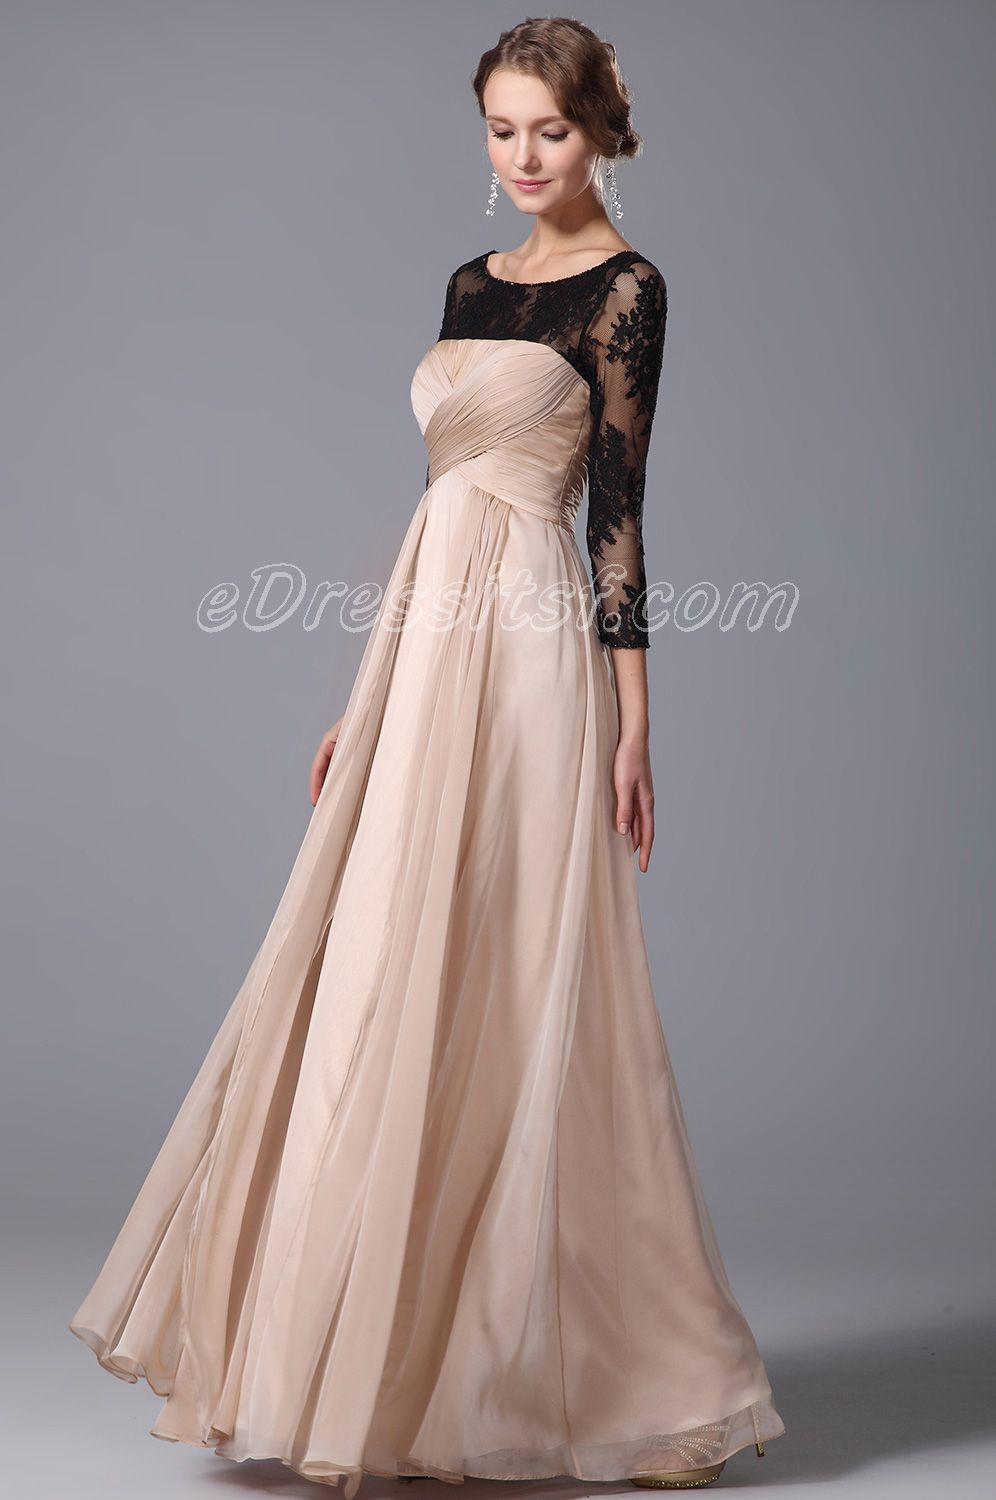 Elegant Empire Waist Evening Gown With Lace Sleeves | Formal dresses ...